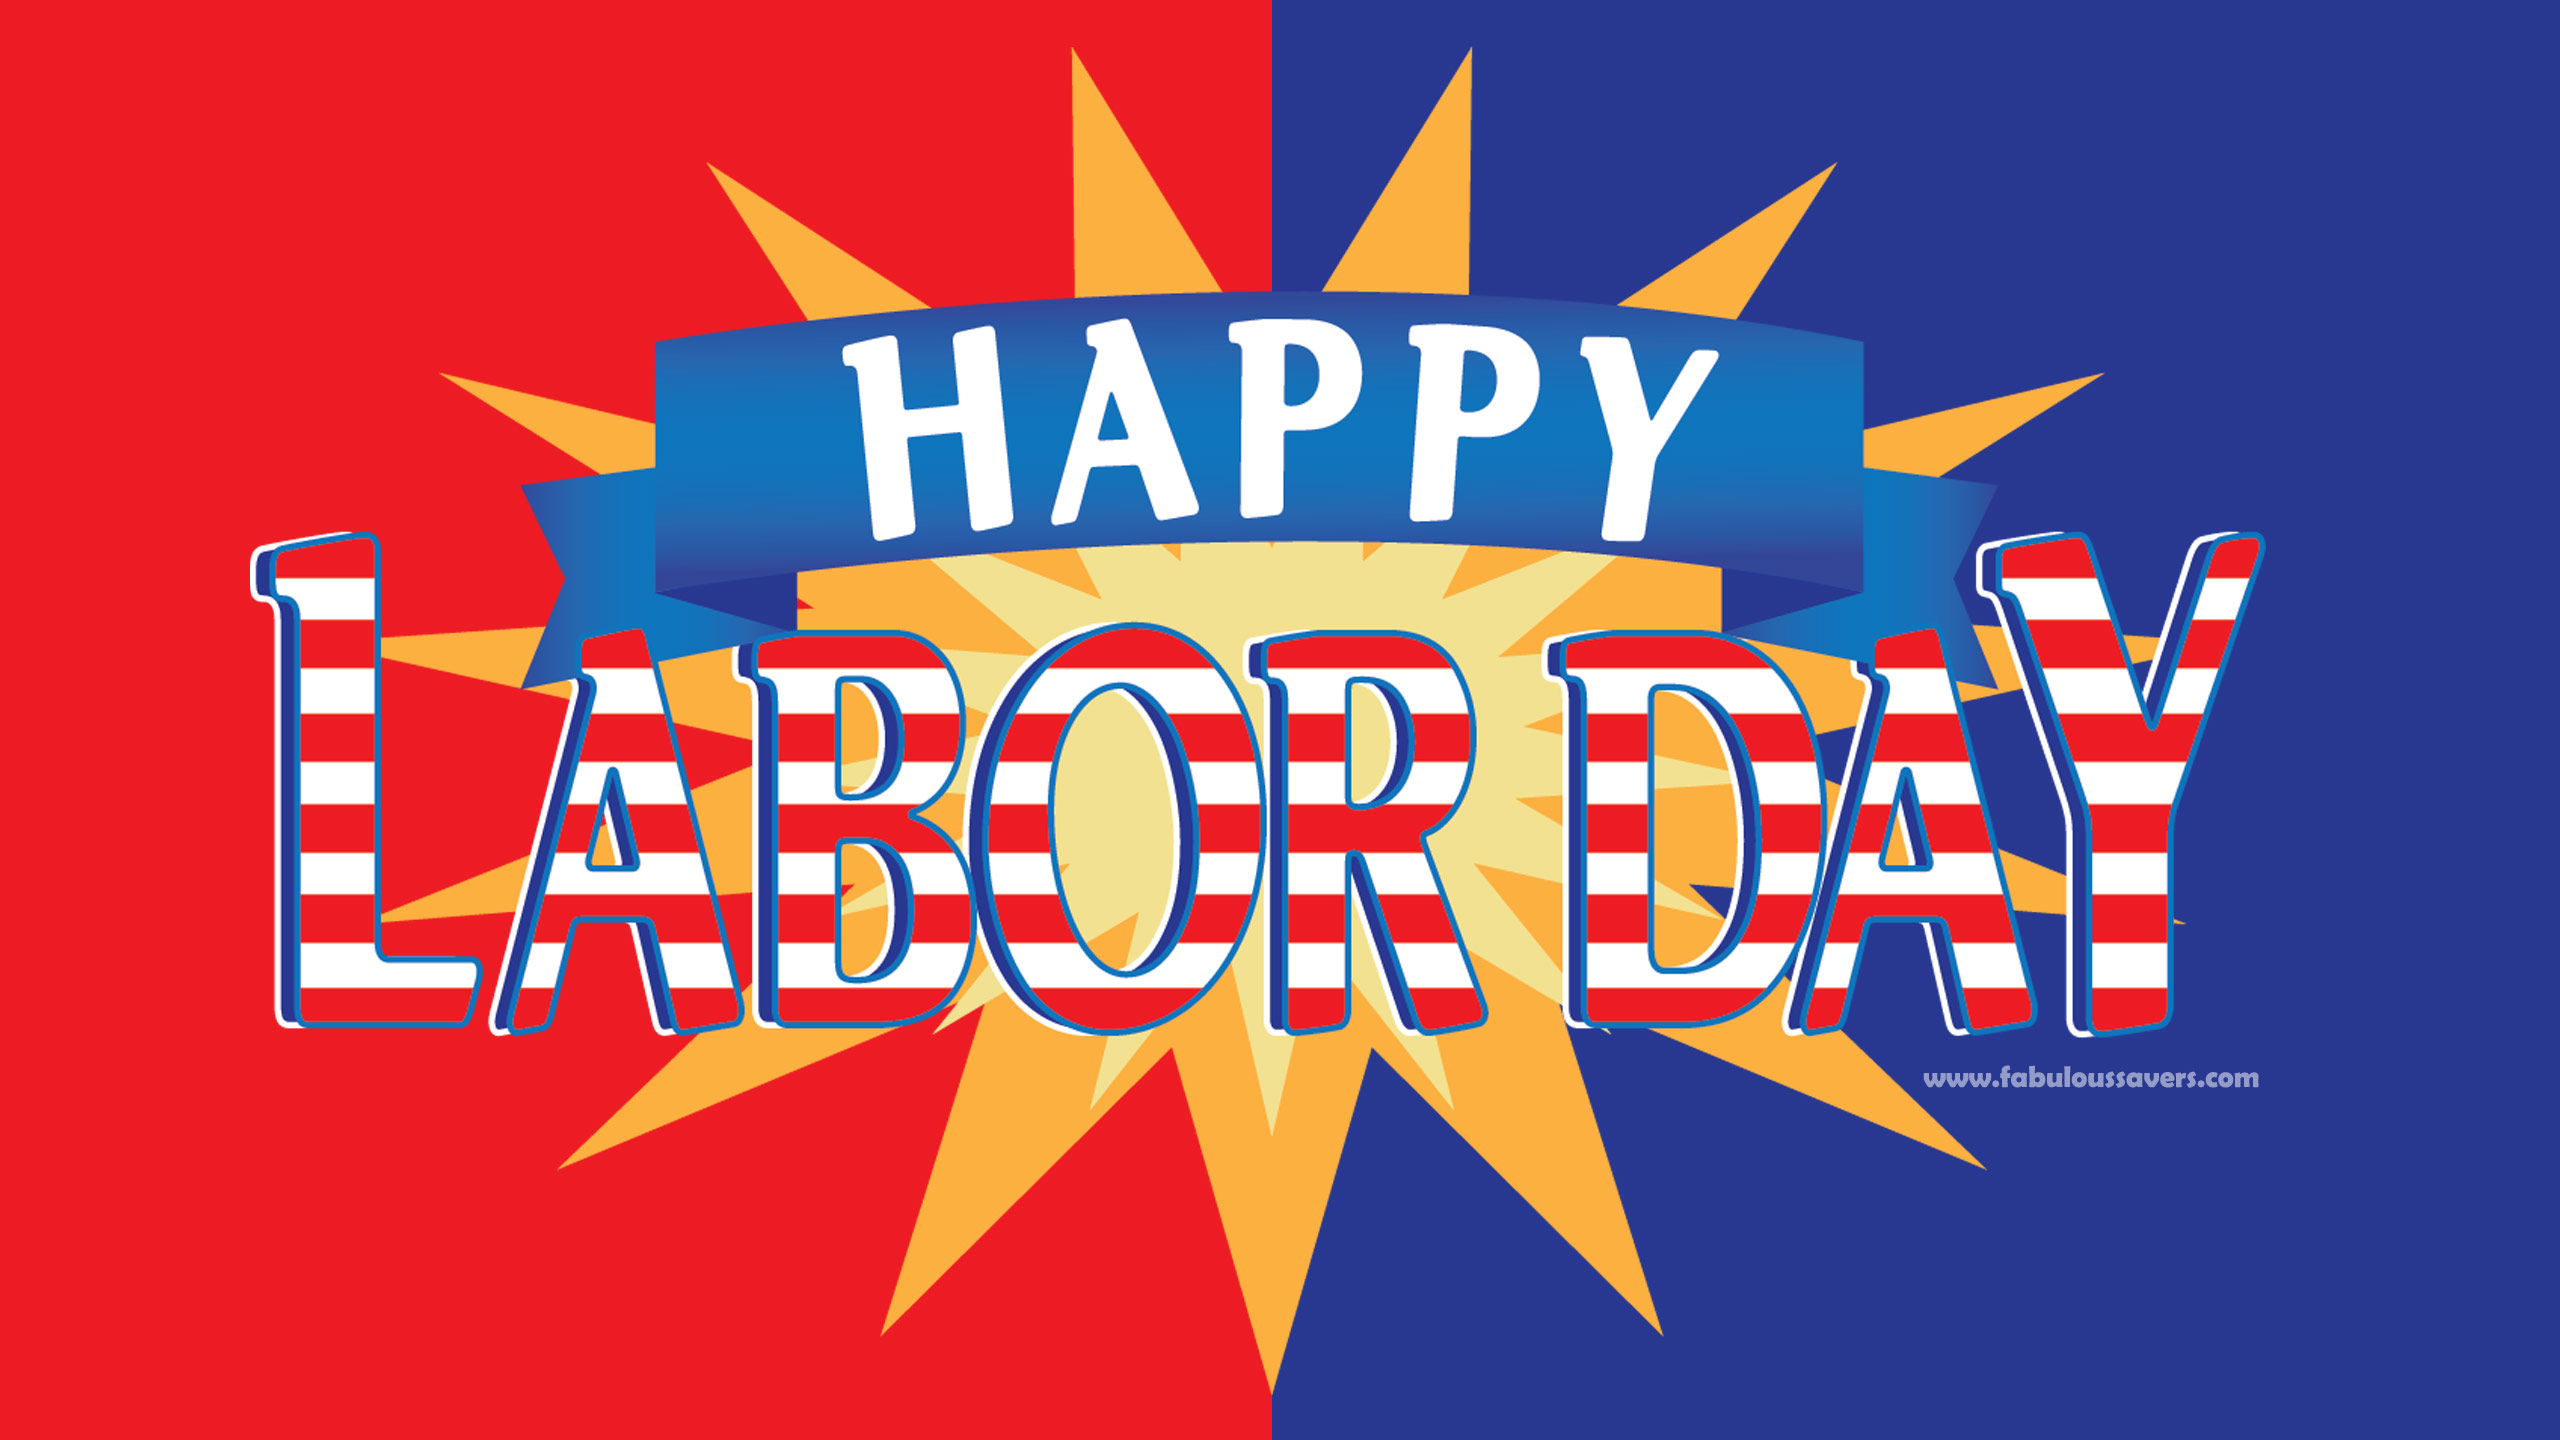 2560x1440 Labor Day Hd Wallpapers Free Computer Desktop Wallpapers